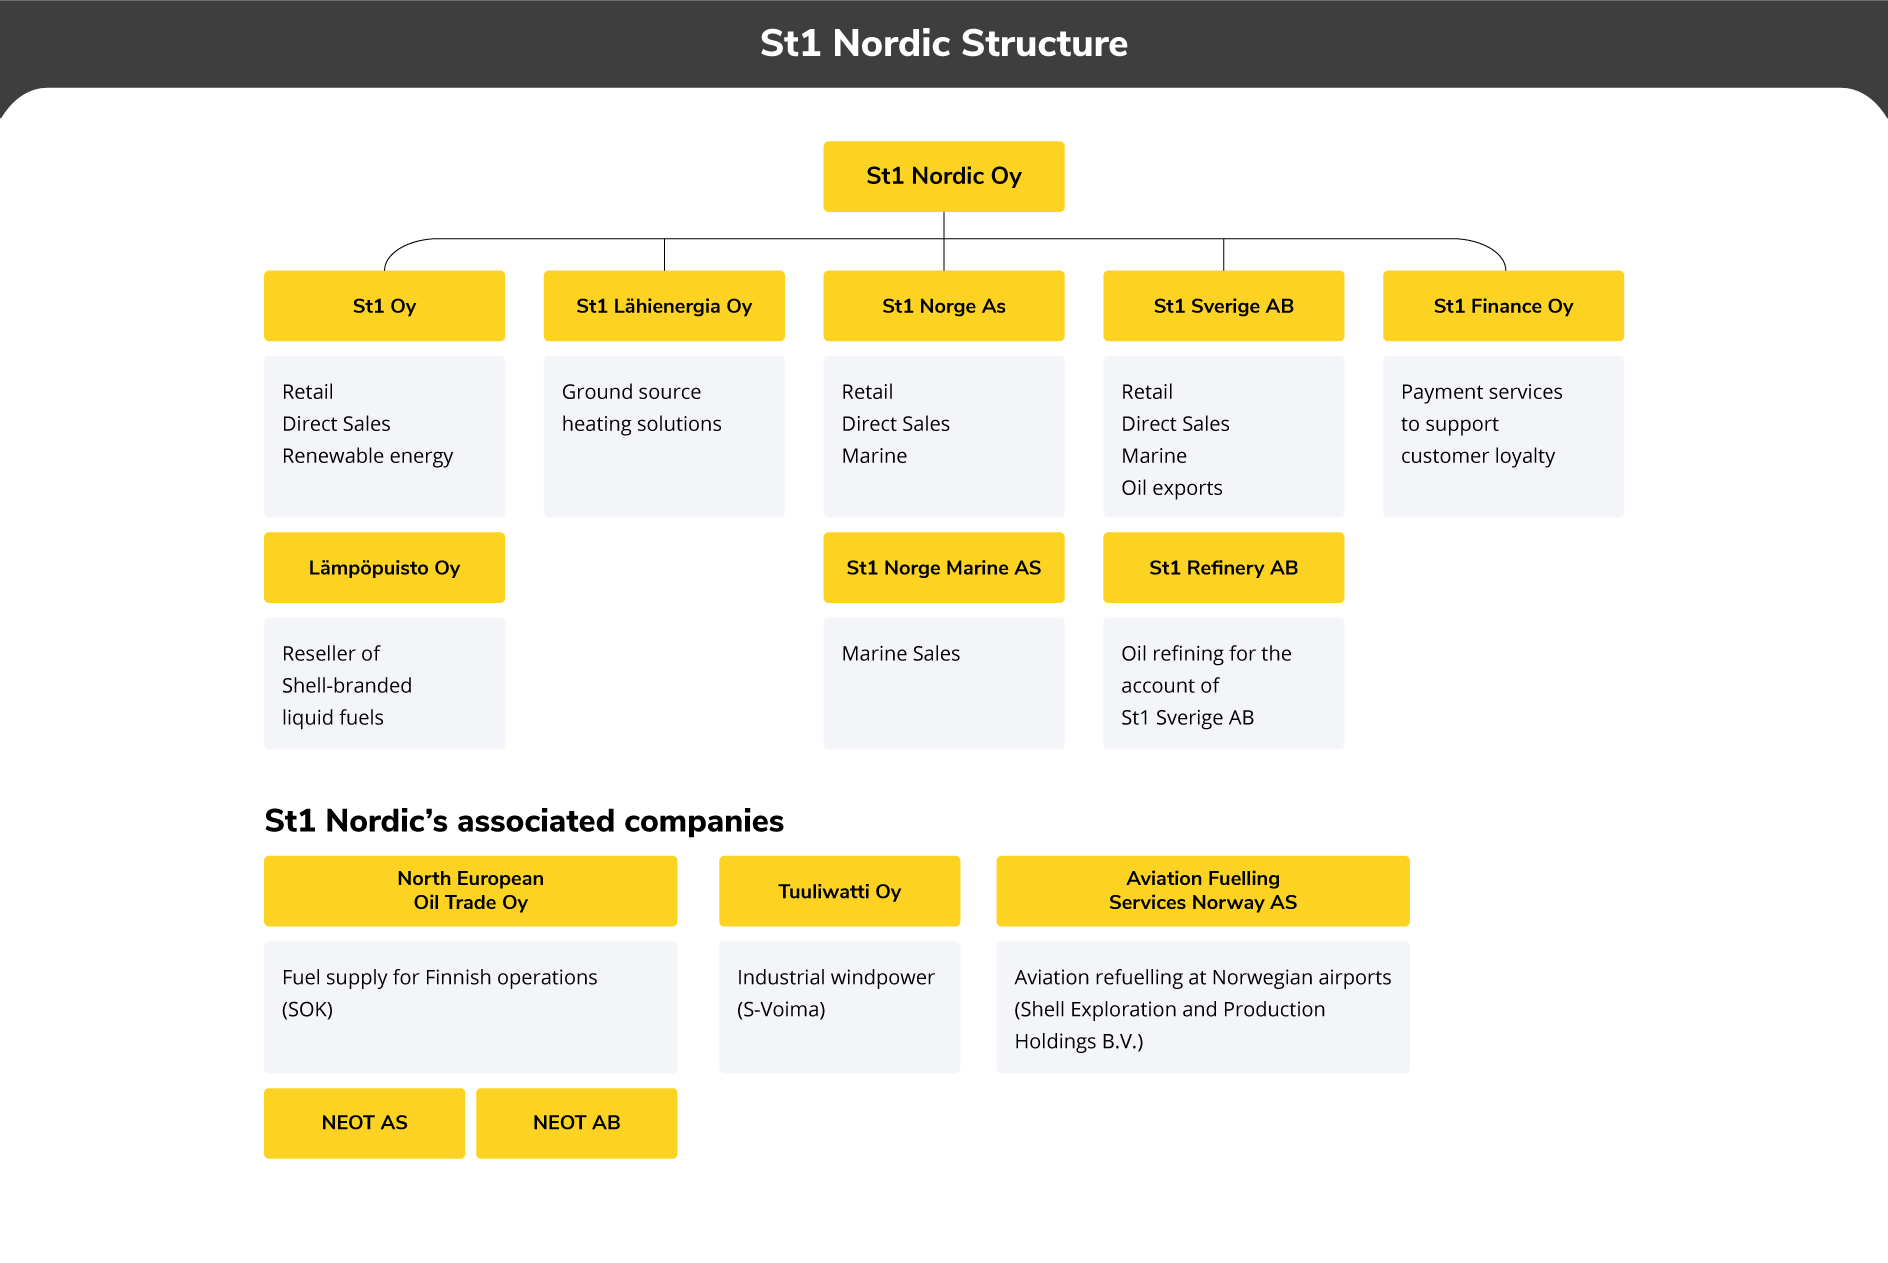 St1-nordic-company-structure-2019